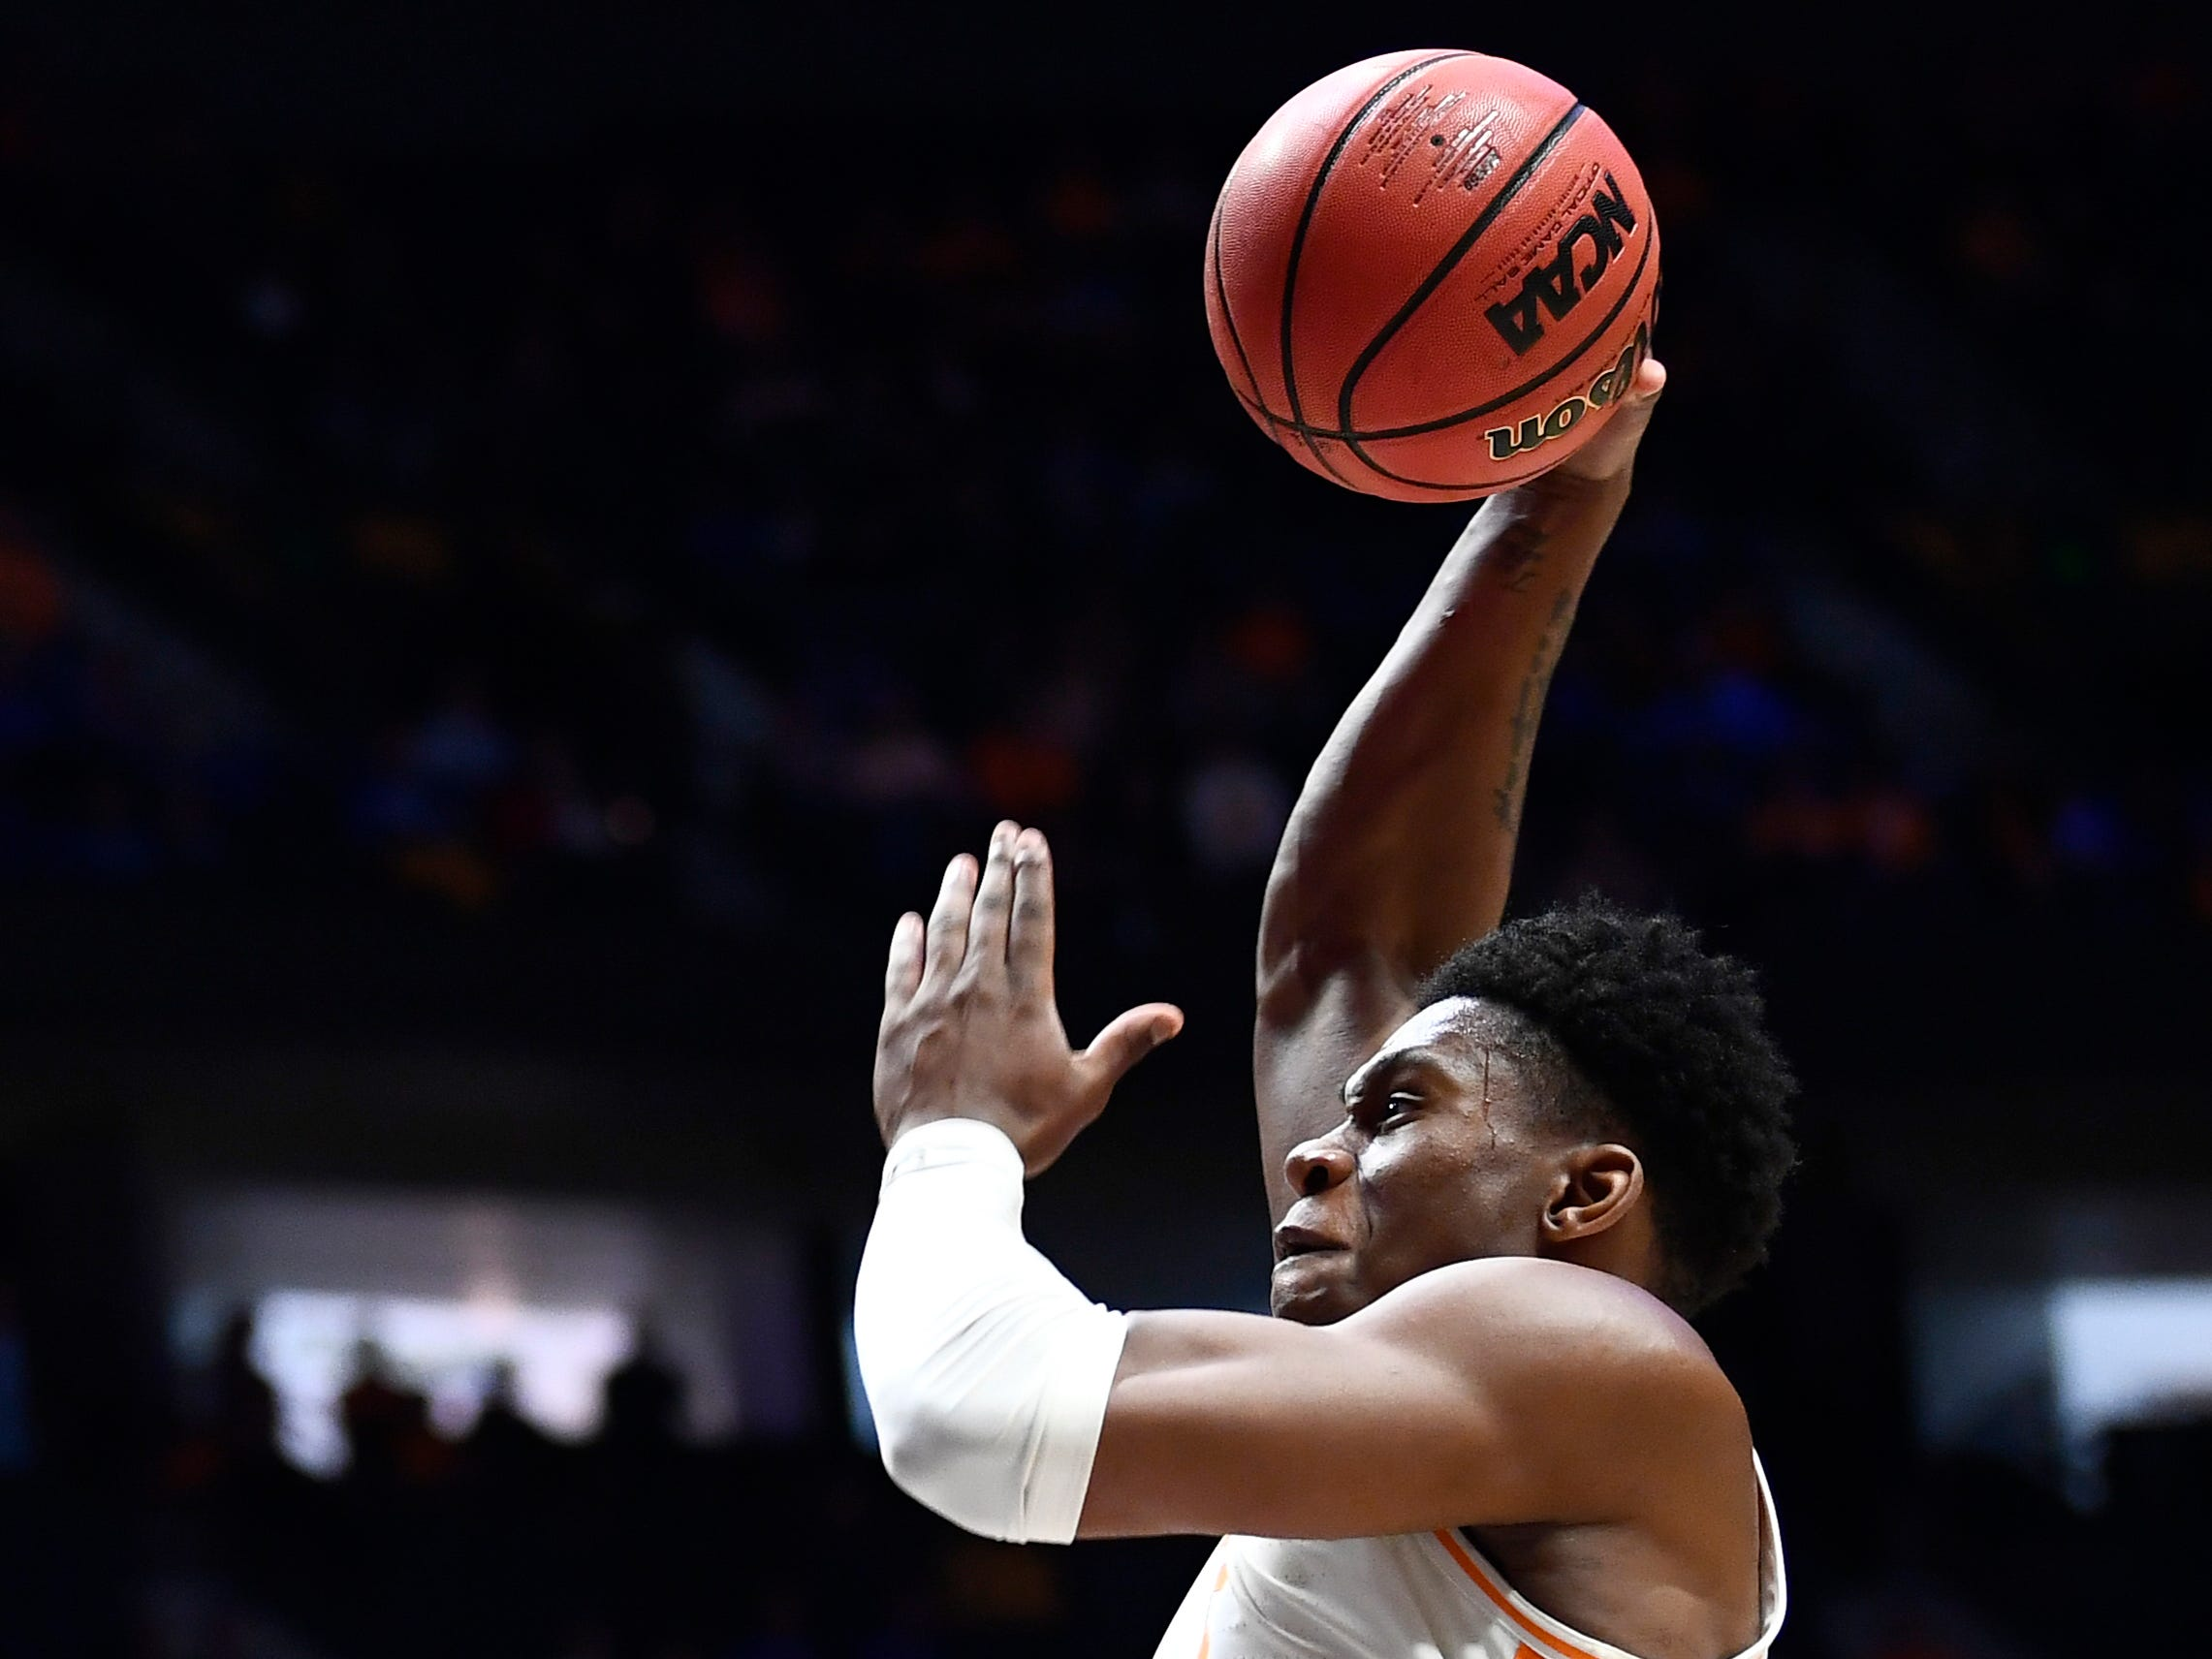 Tennessee guard Admiral Schofield (5) dunks over Mississippi State guard Robert Woodard (12) during the second half of the SEC Men's Basketball Tournament game at Bridgestone Arena in Nashville, Tenn., Friday, March 15, 2019.